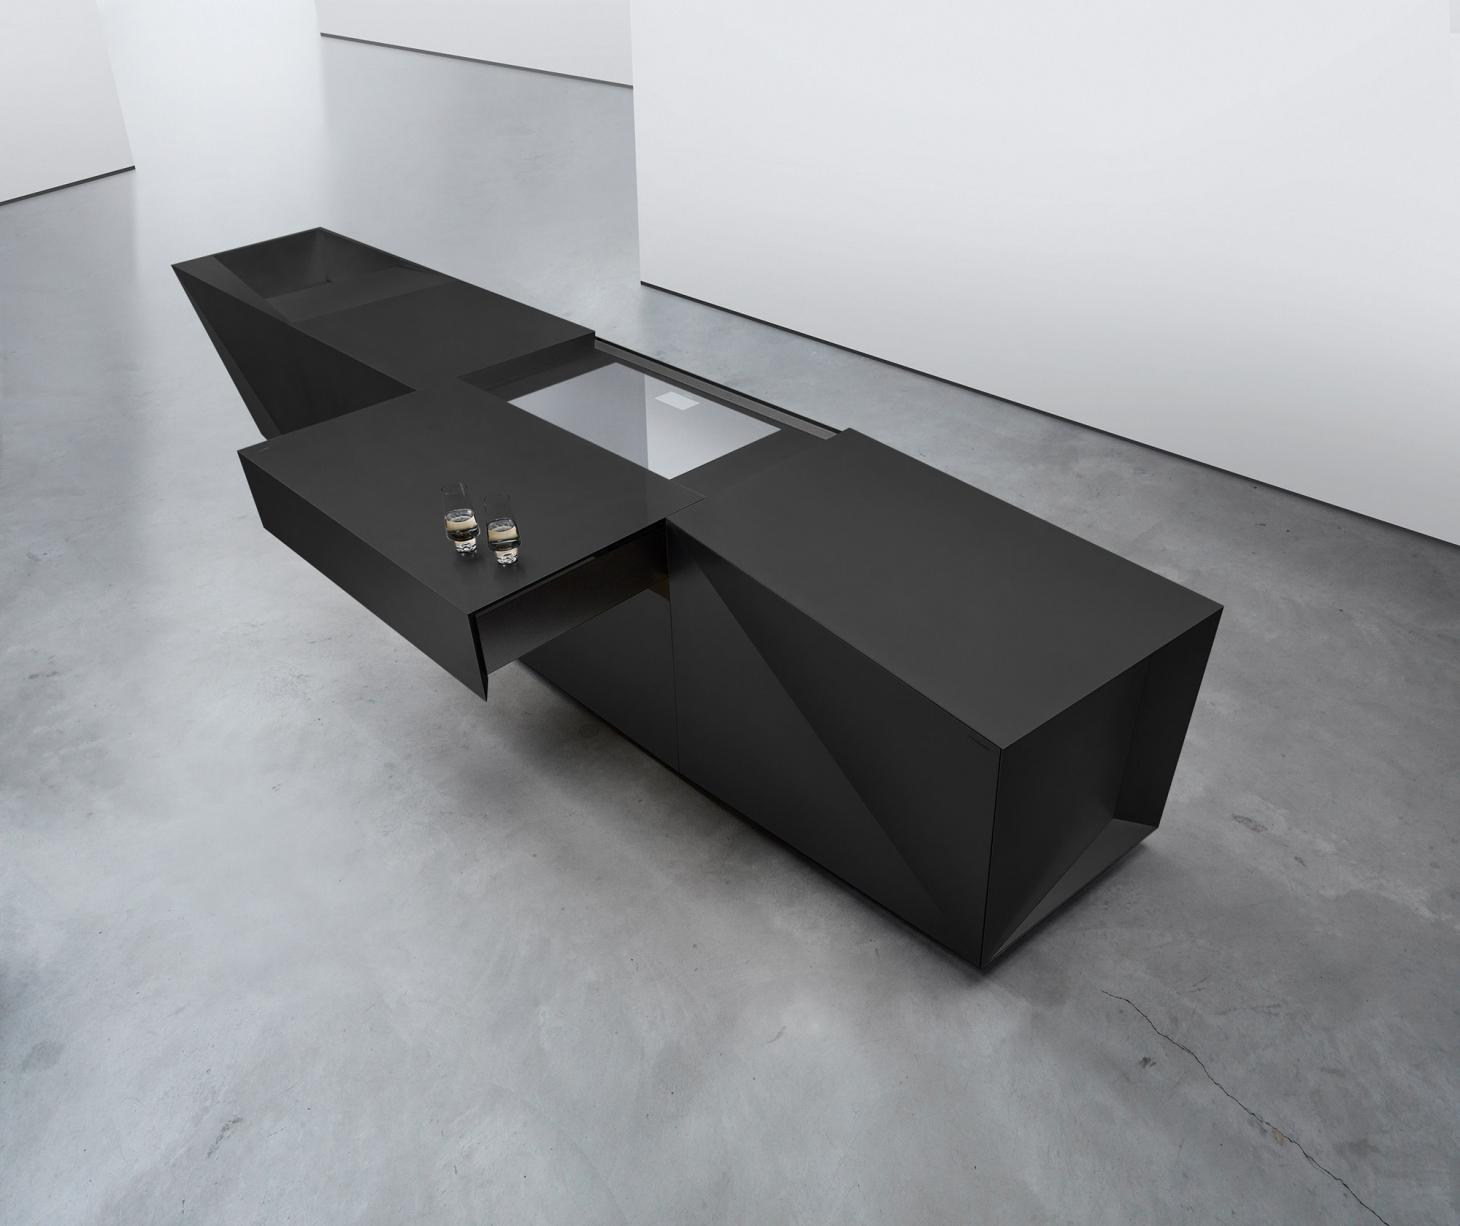 An aerial view of a Steininger kitchen island in black on a concrete floor